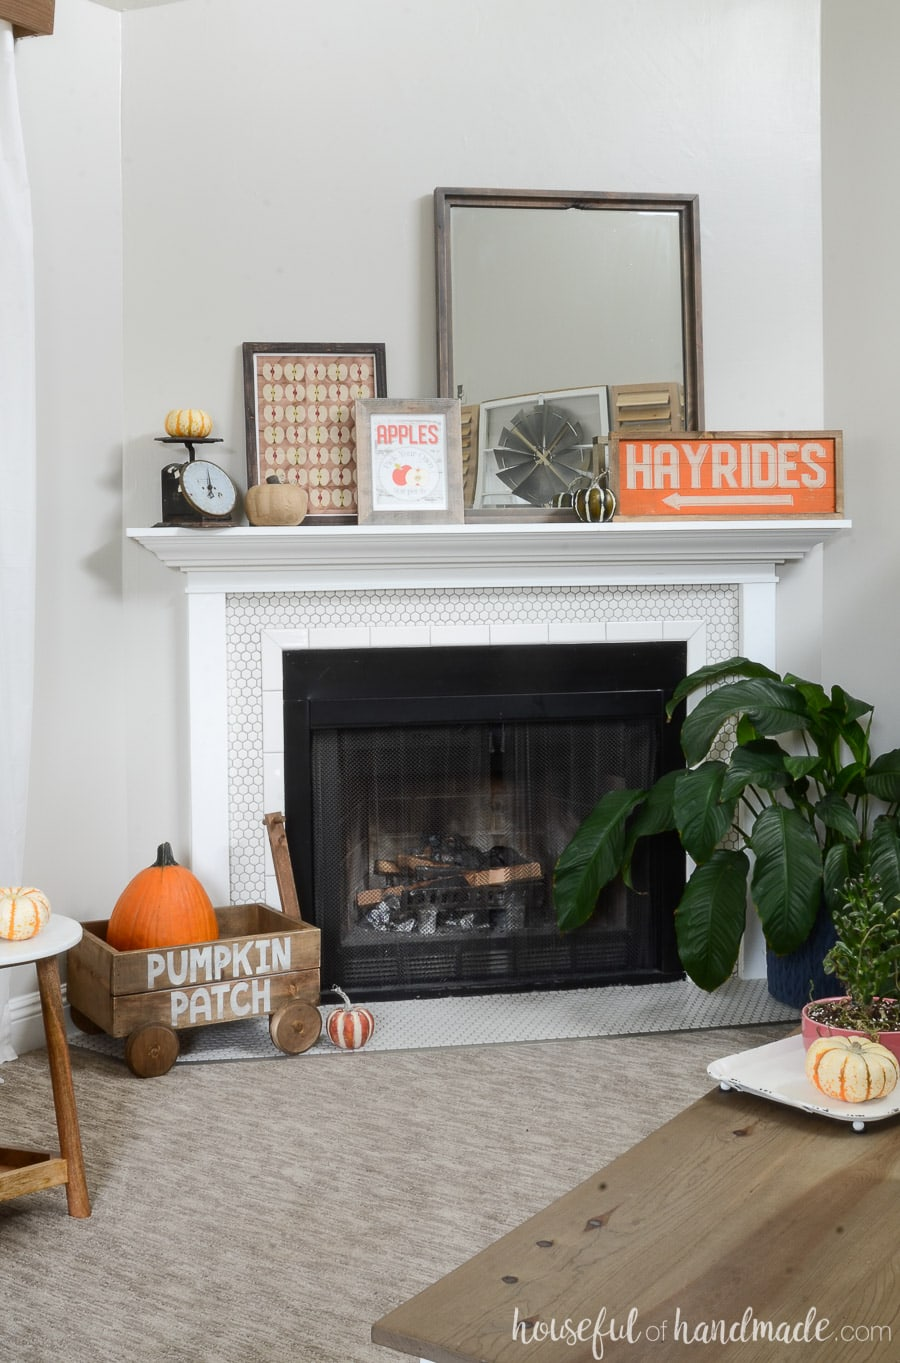 Decorate your mantel for fall with all your favorite fall traditions. This mantel has a wood hayrides sign, apple picking art, vintage scale, and pumpkins. A decorative wood wagon adds even more fall the hearth.